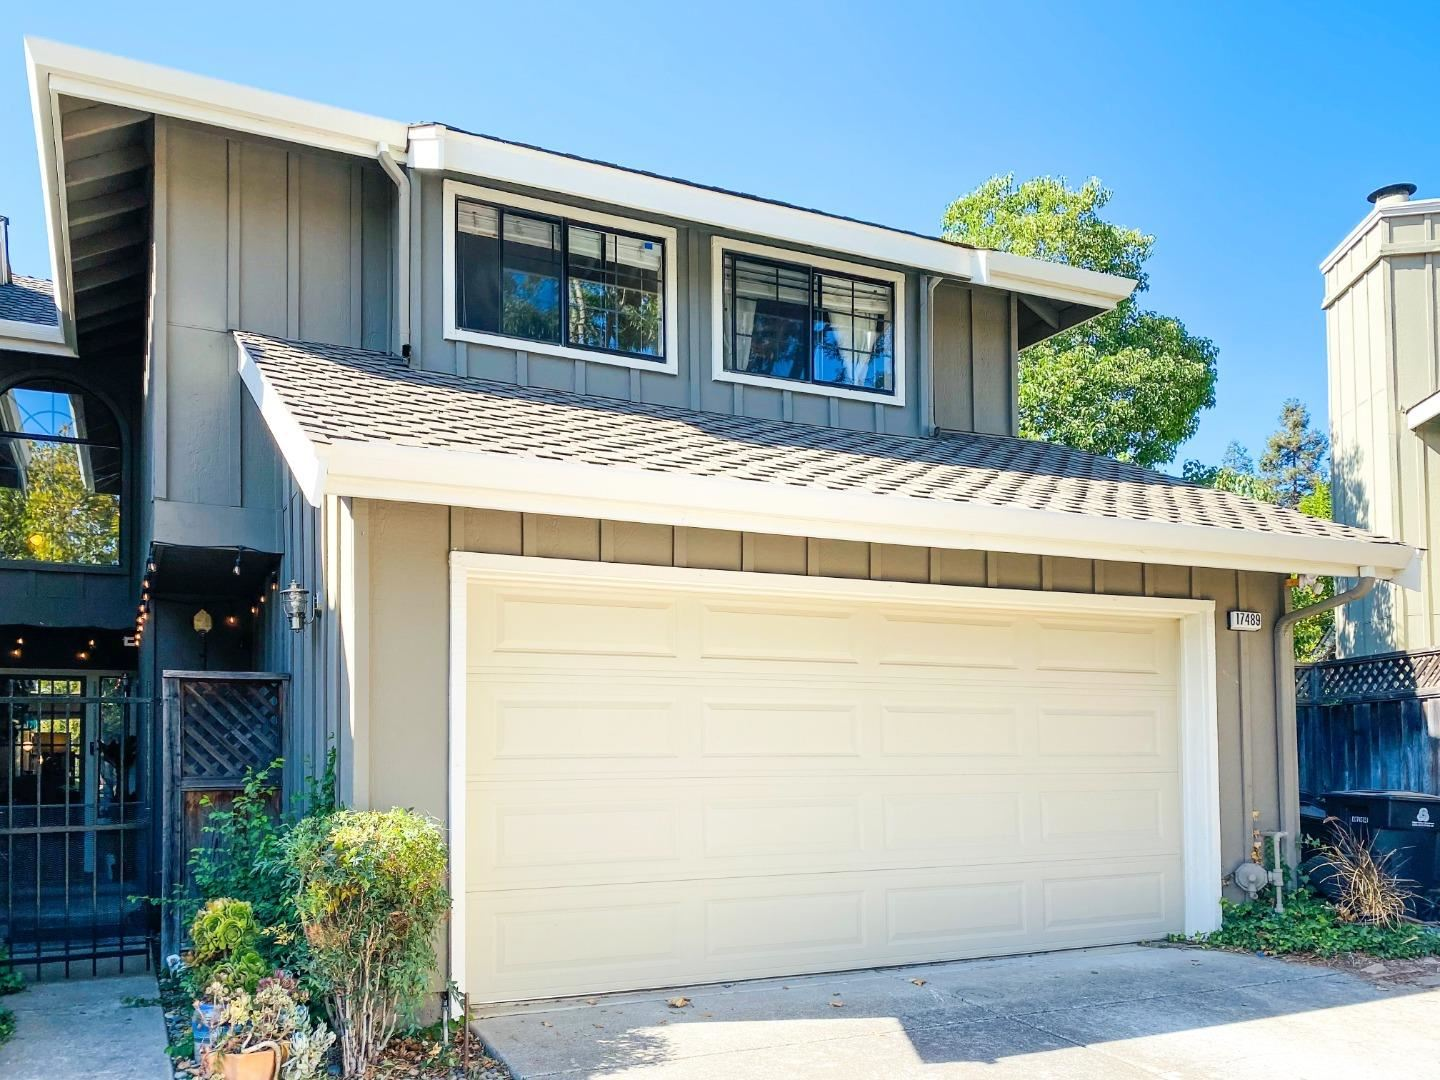 Photo for 17489 Carriage Lamp Way, MORGAN HILL, CA 95037 (MLS # ML81863485)